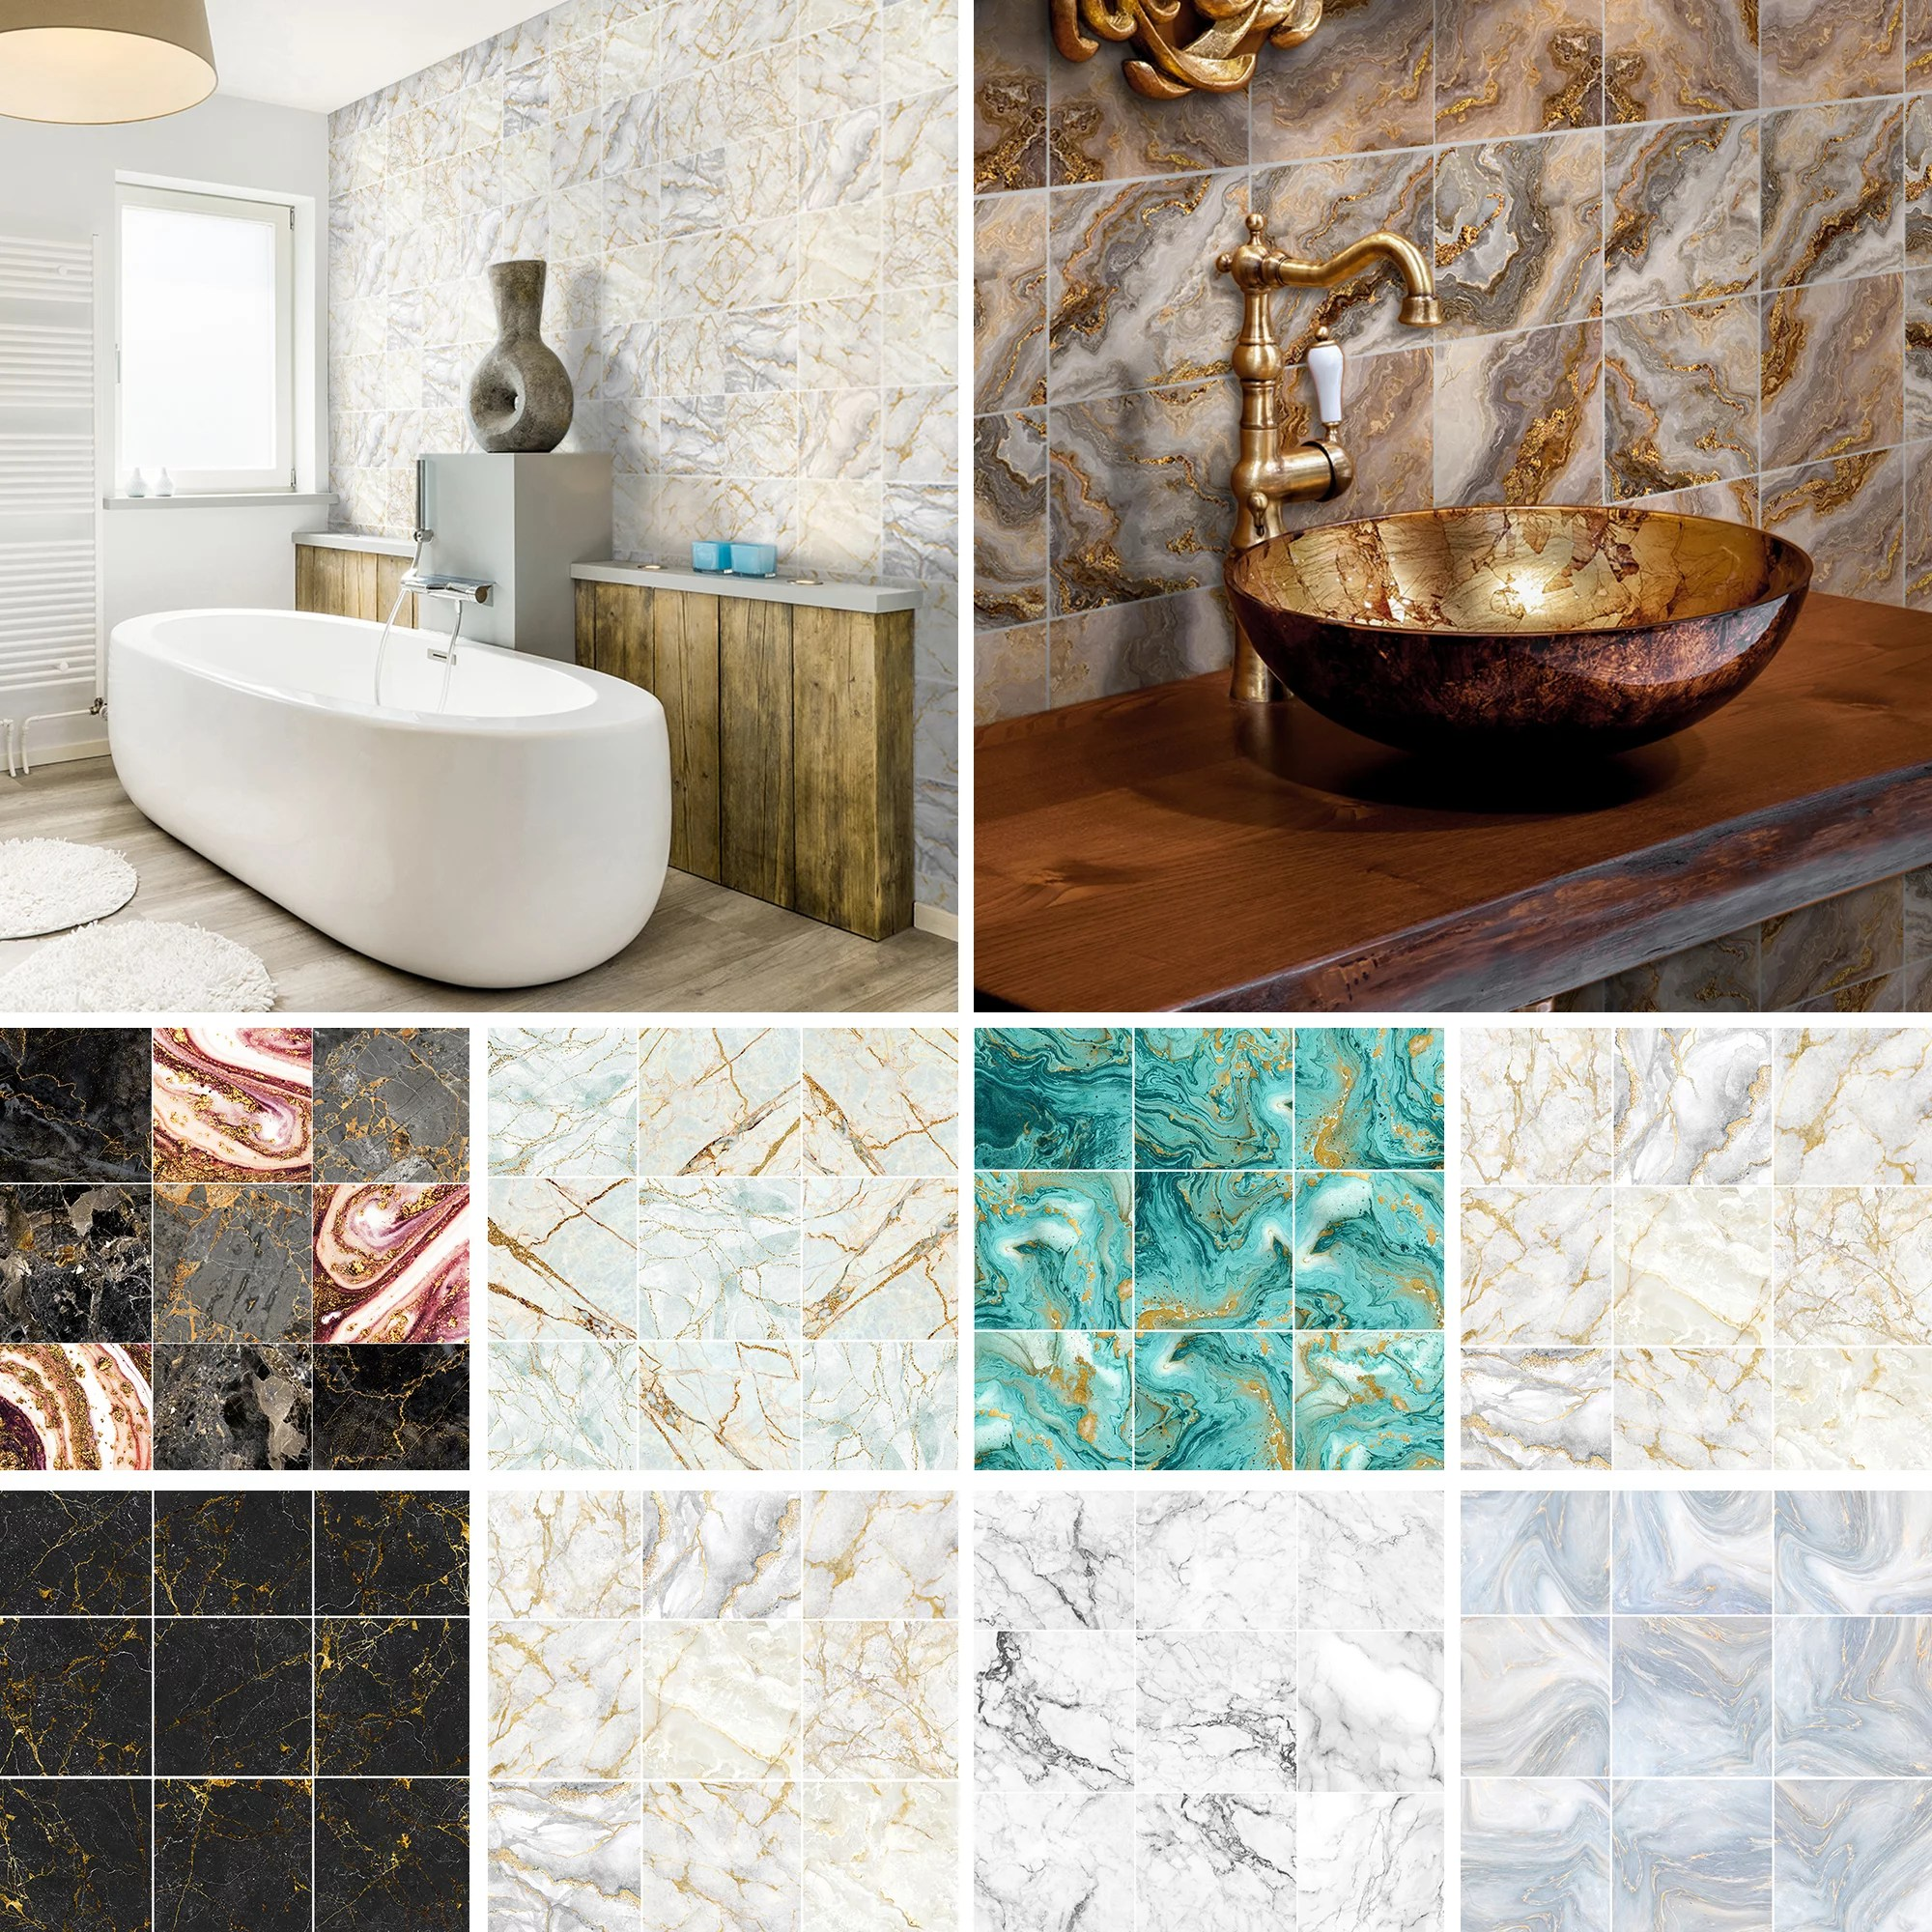 10 90pcs marble effect tile stickers stick on bathroom kitchen home wall decal self adhesive waterproof walmart com